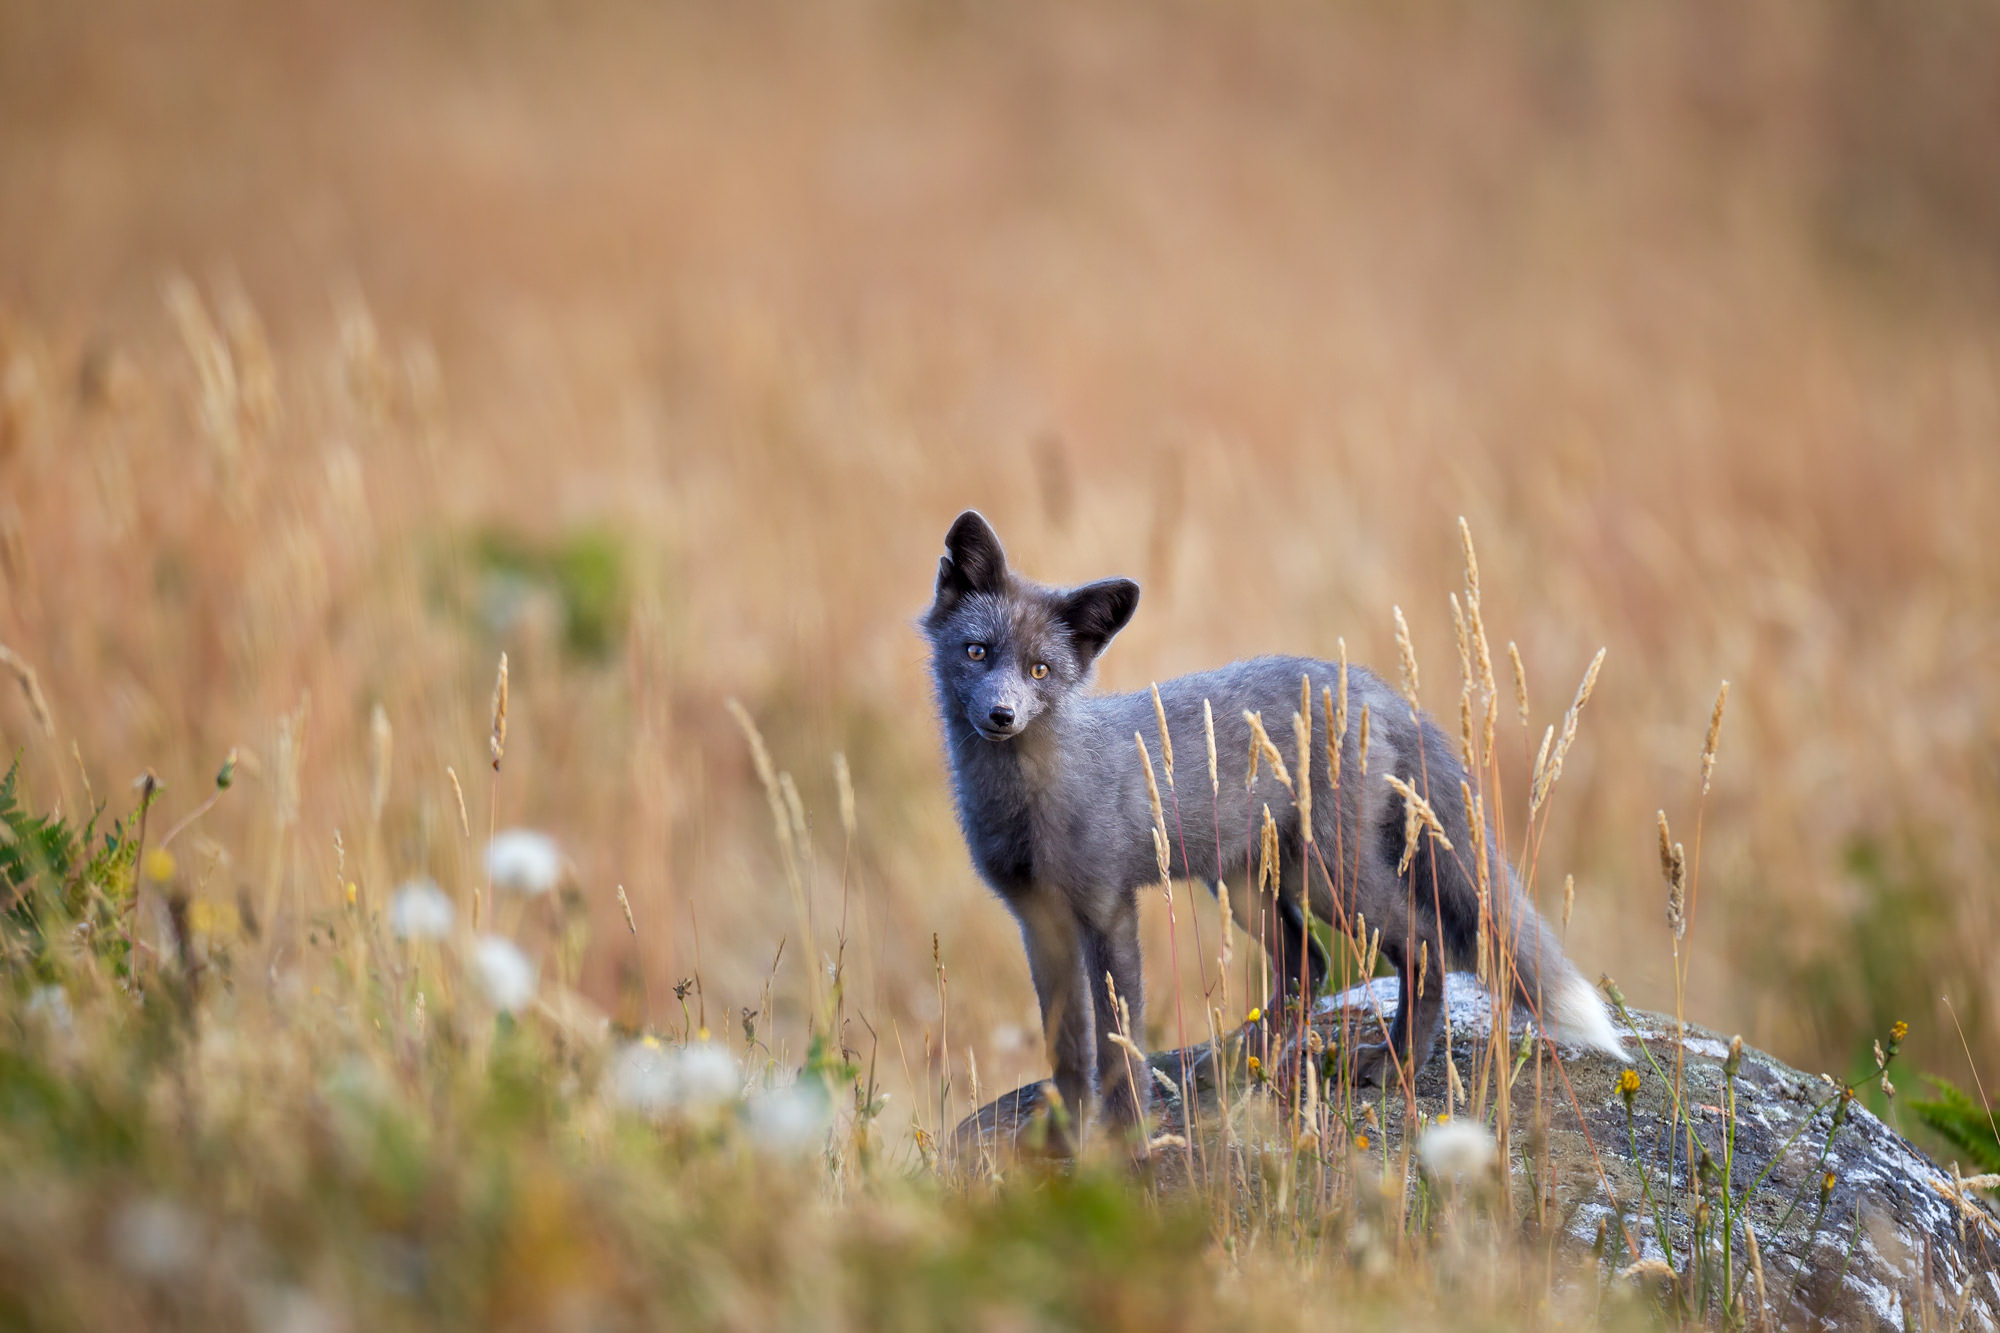 Fox, Black Fox, Washington, San Juan Island, limited edition, photograph, fine art, wildlife, photo